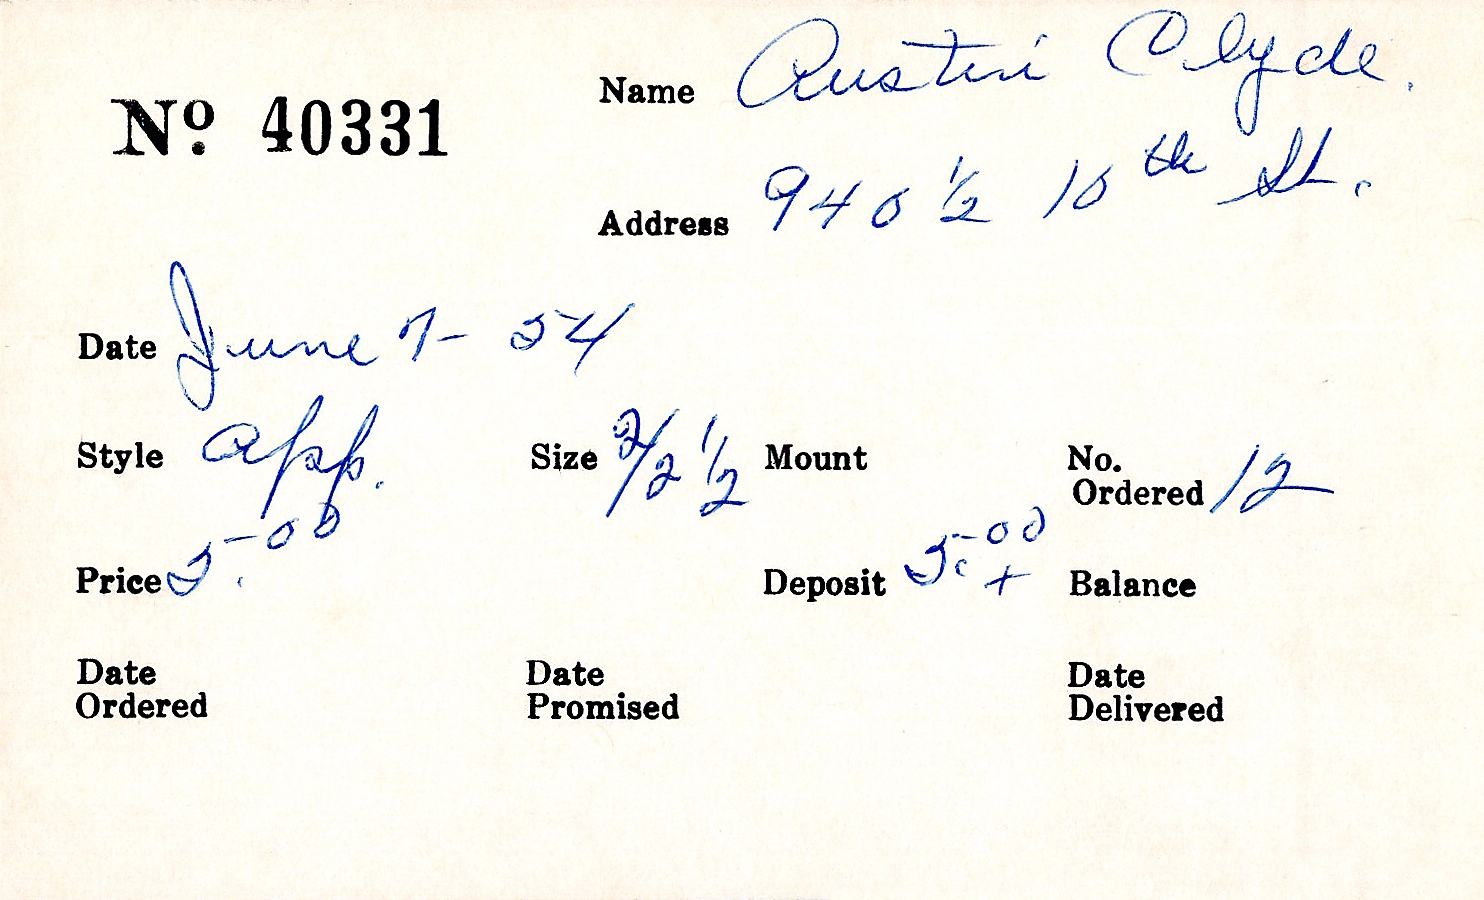 Index card for Clyde Austin